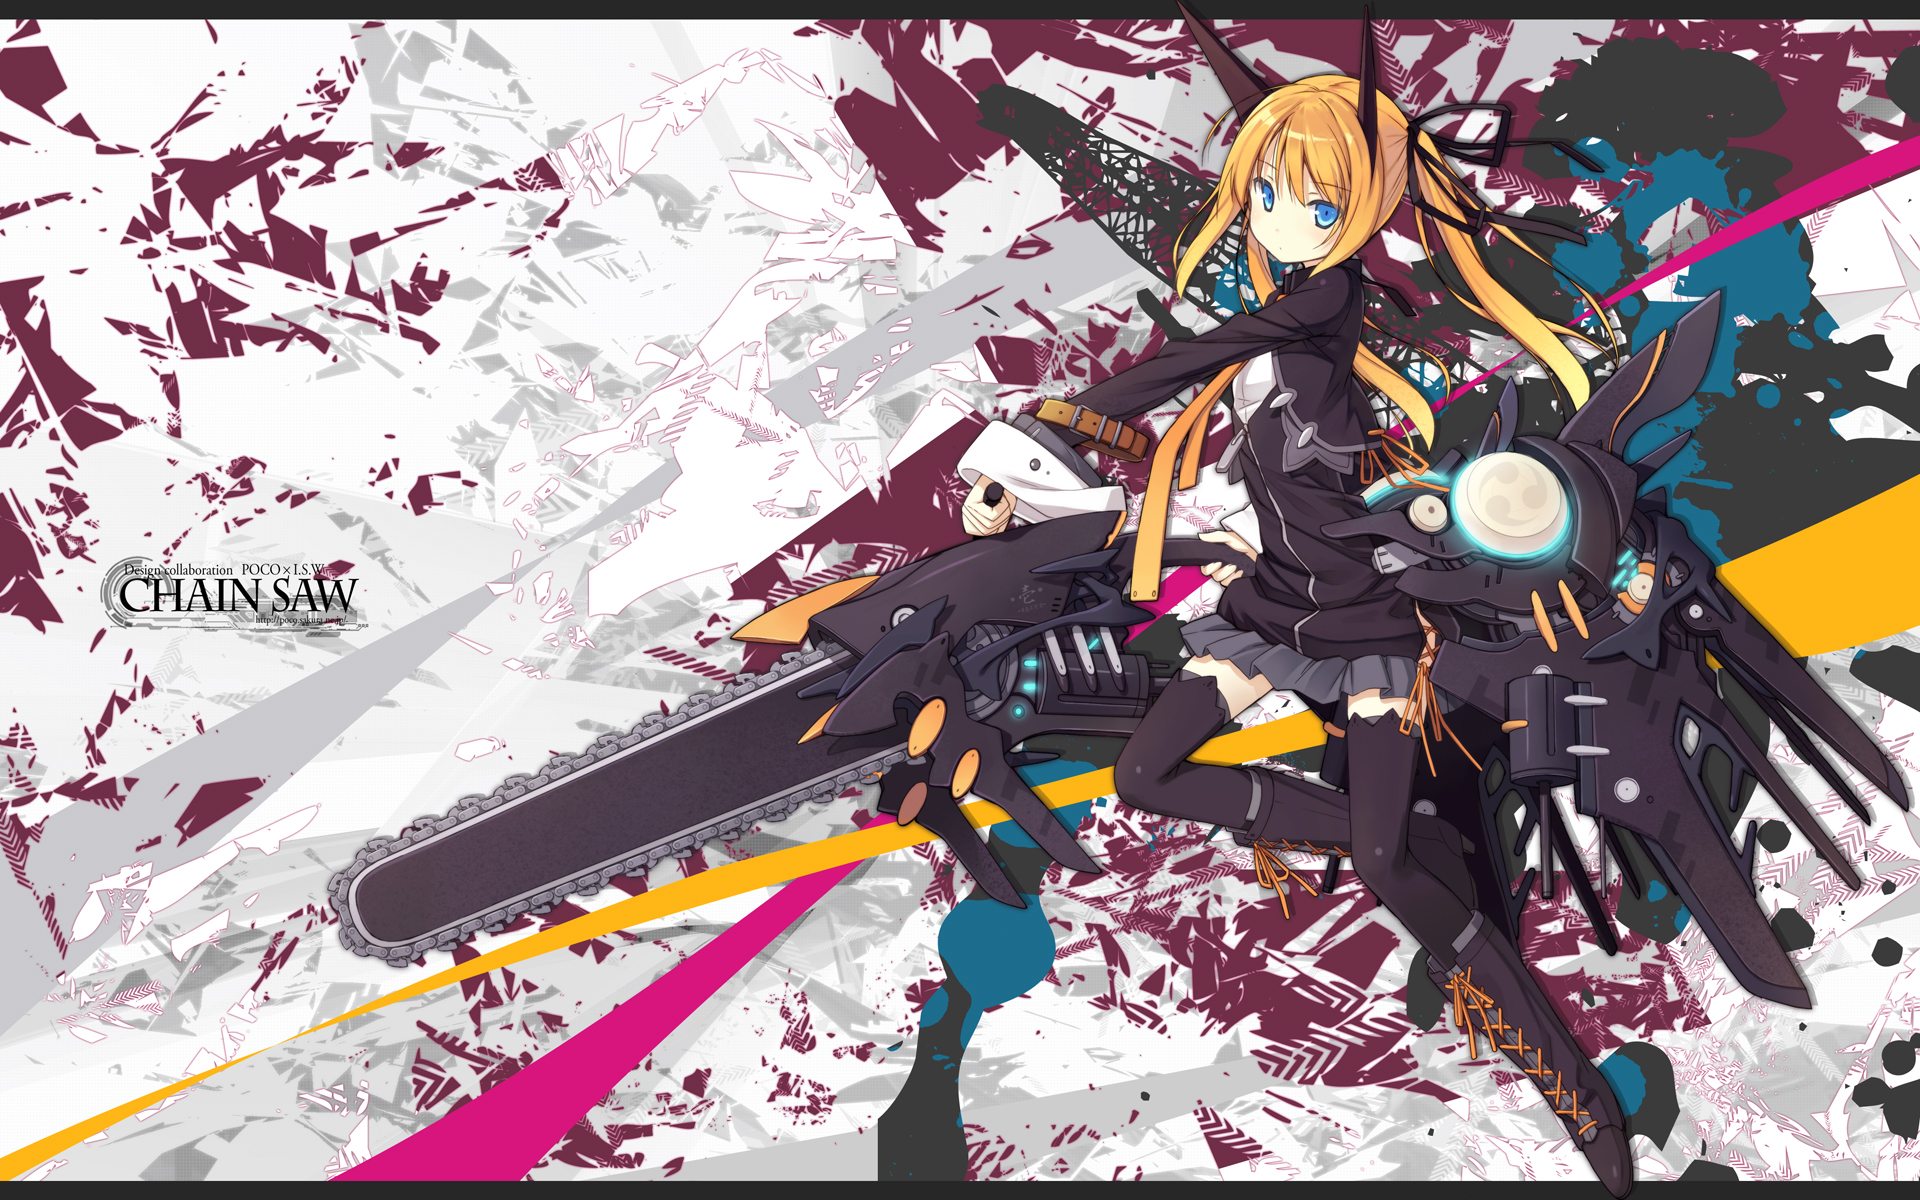 Chainsaw hd wallpaper background image 1920x1200 id - Abstract anime girl ...